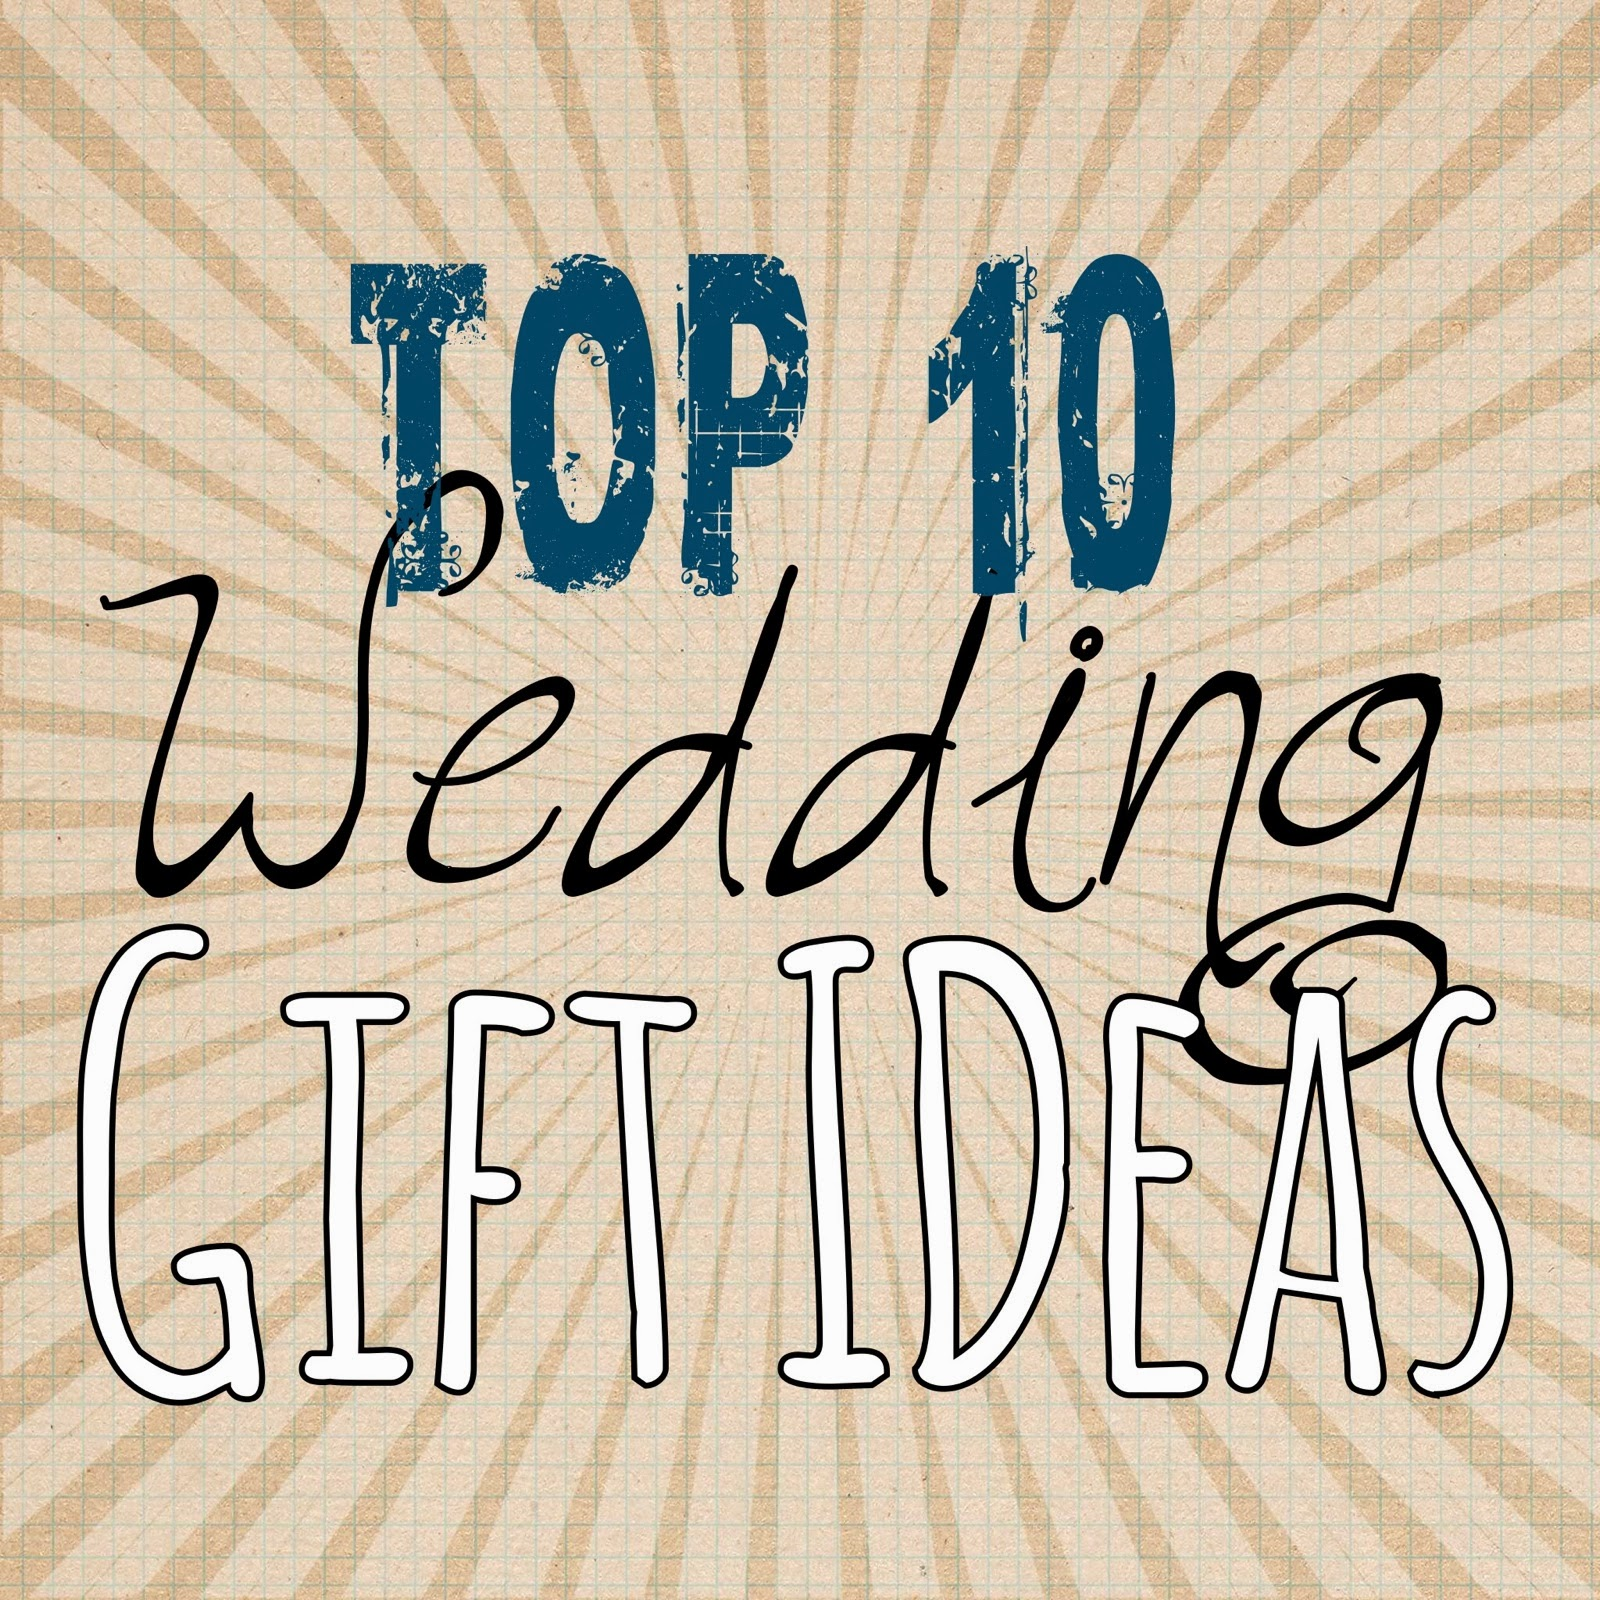 Wedding Gift Ideas For Best Friend Girl: Top 10 Wedding Gift Ideas